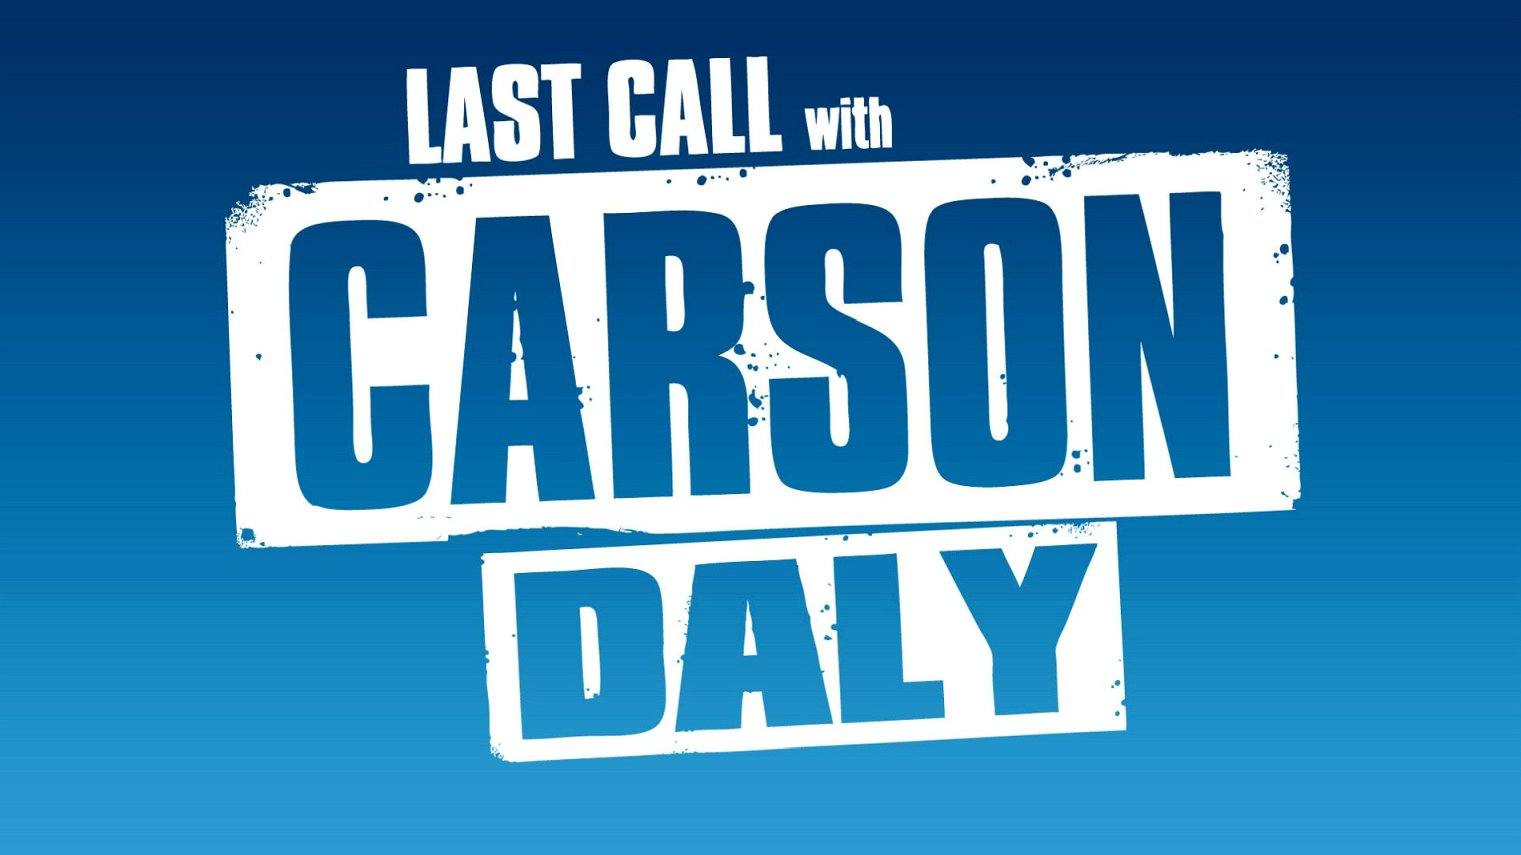 what time is Last Call with Carson Daly on